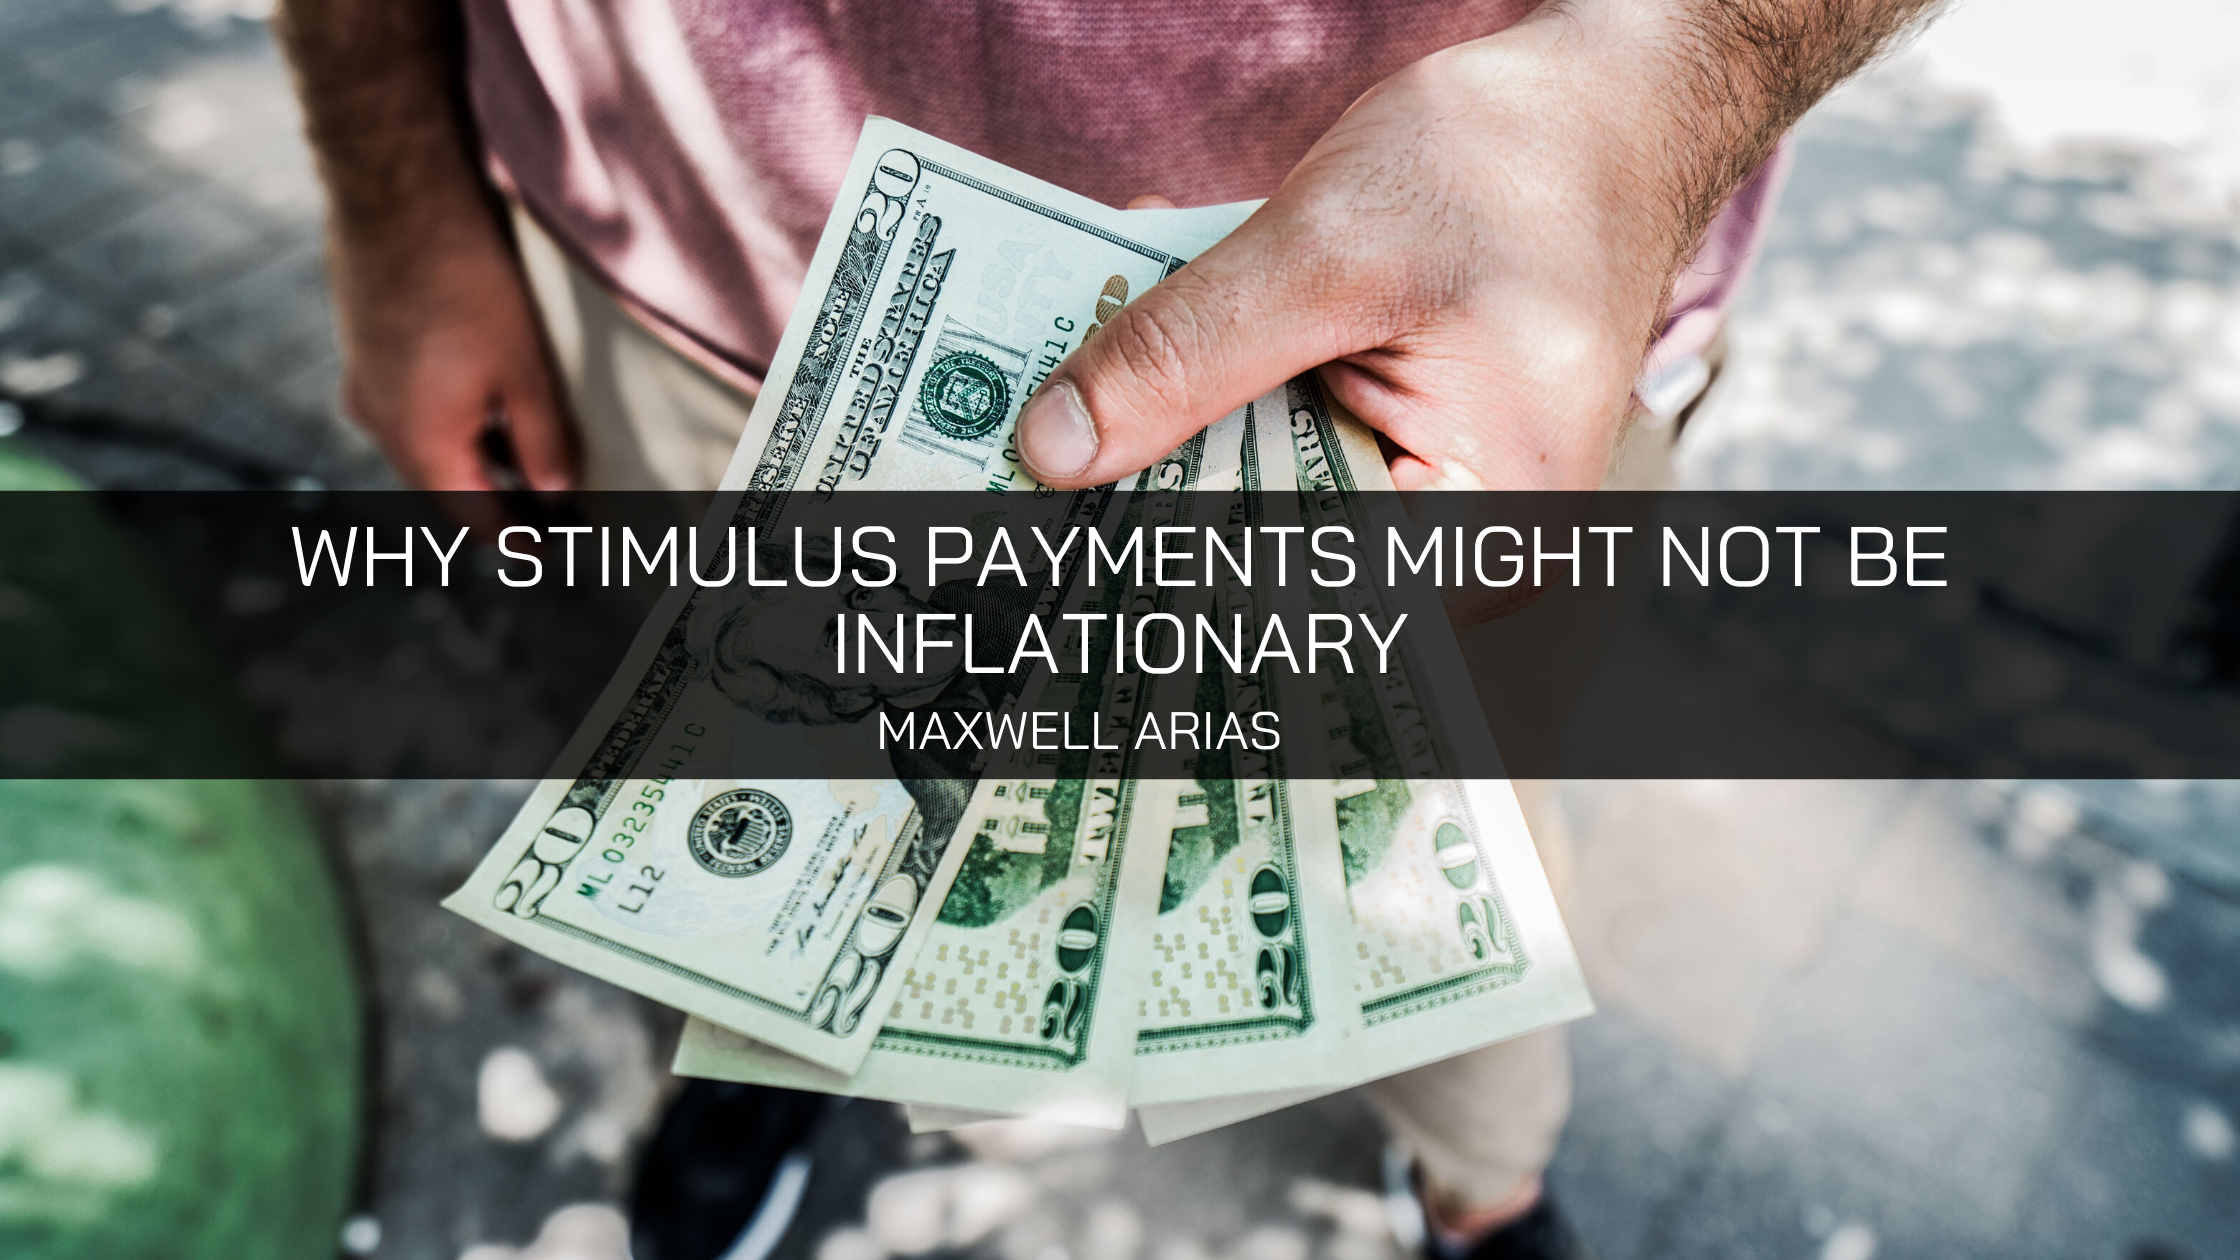 Maxwell Arias Explains Why Stimulus Payments Might Not Be Inflationary